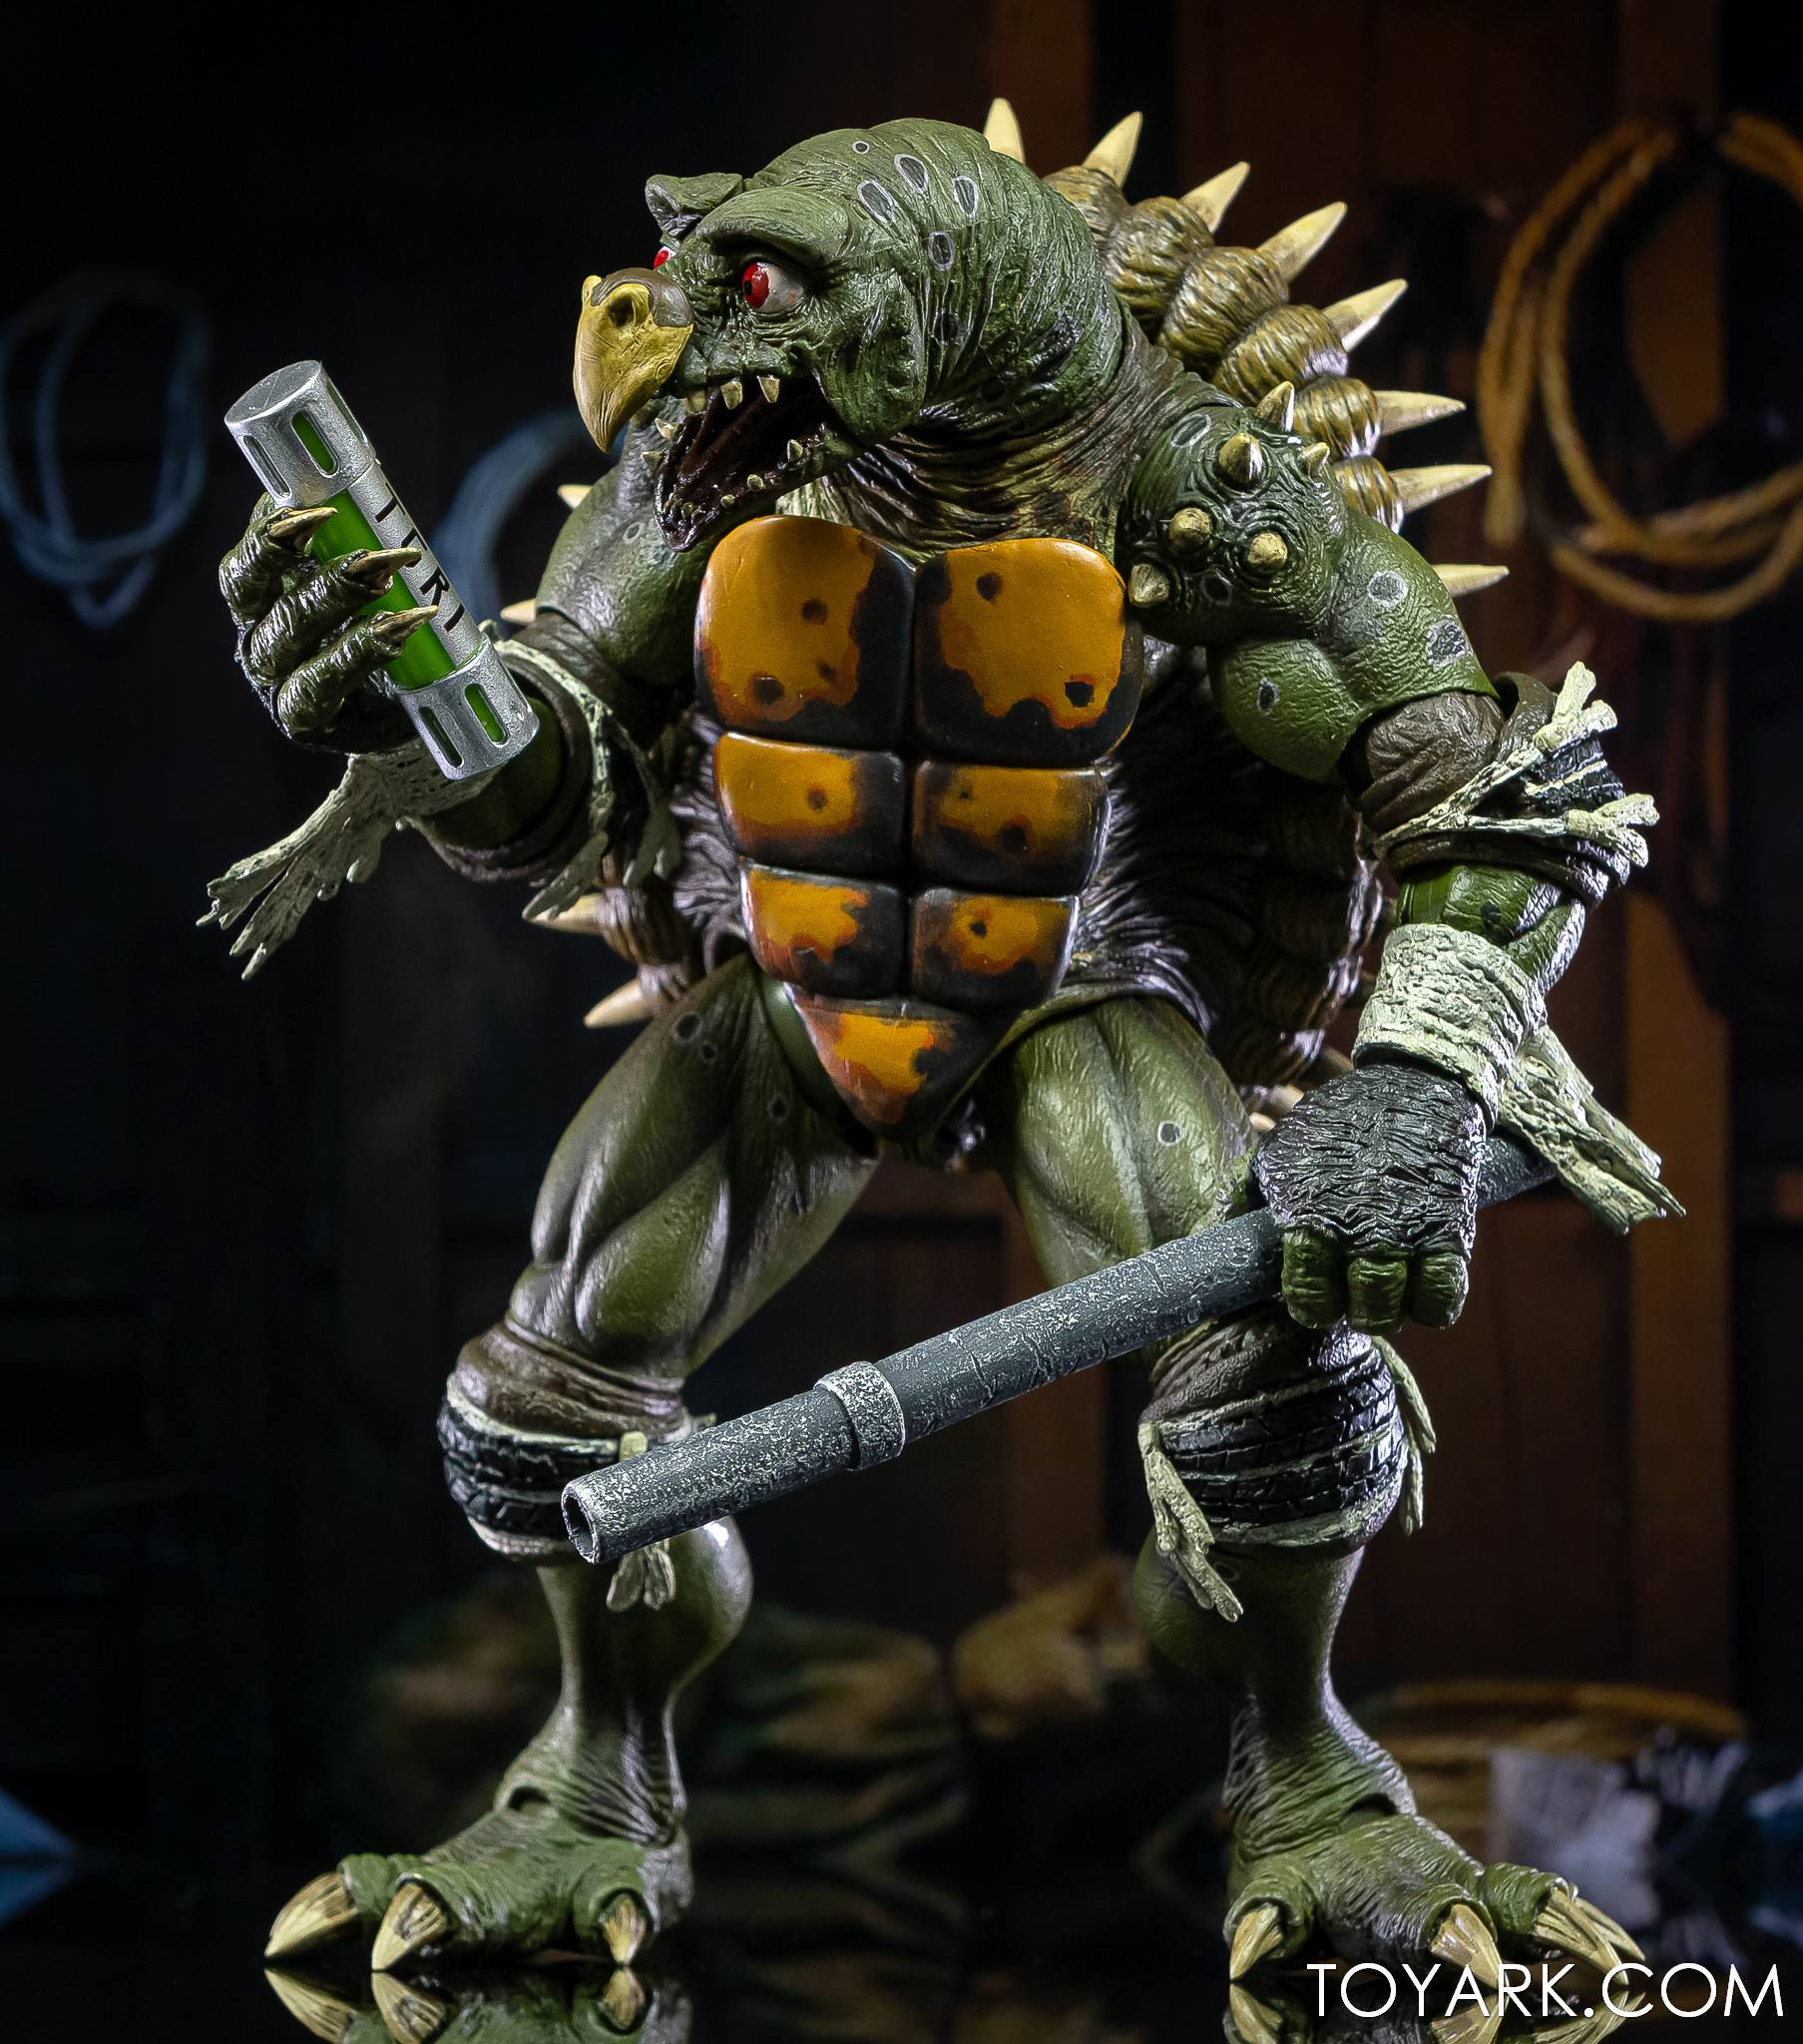 https://news.toyark.com/wp-content/uploads/sites/4/2021/03/NECA-Tokka-and-Rahzar-TMNT-II-021.jpg